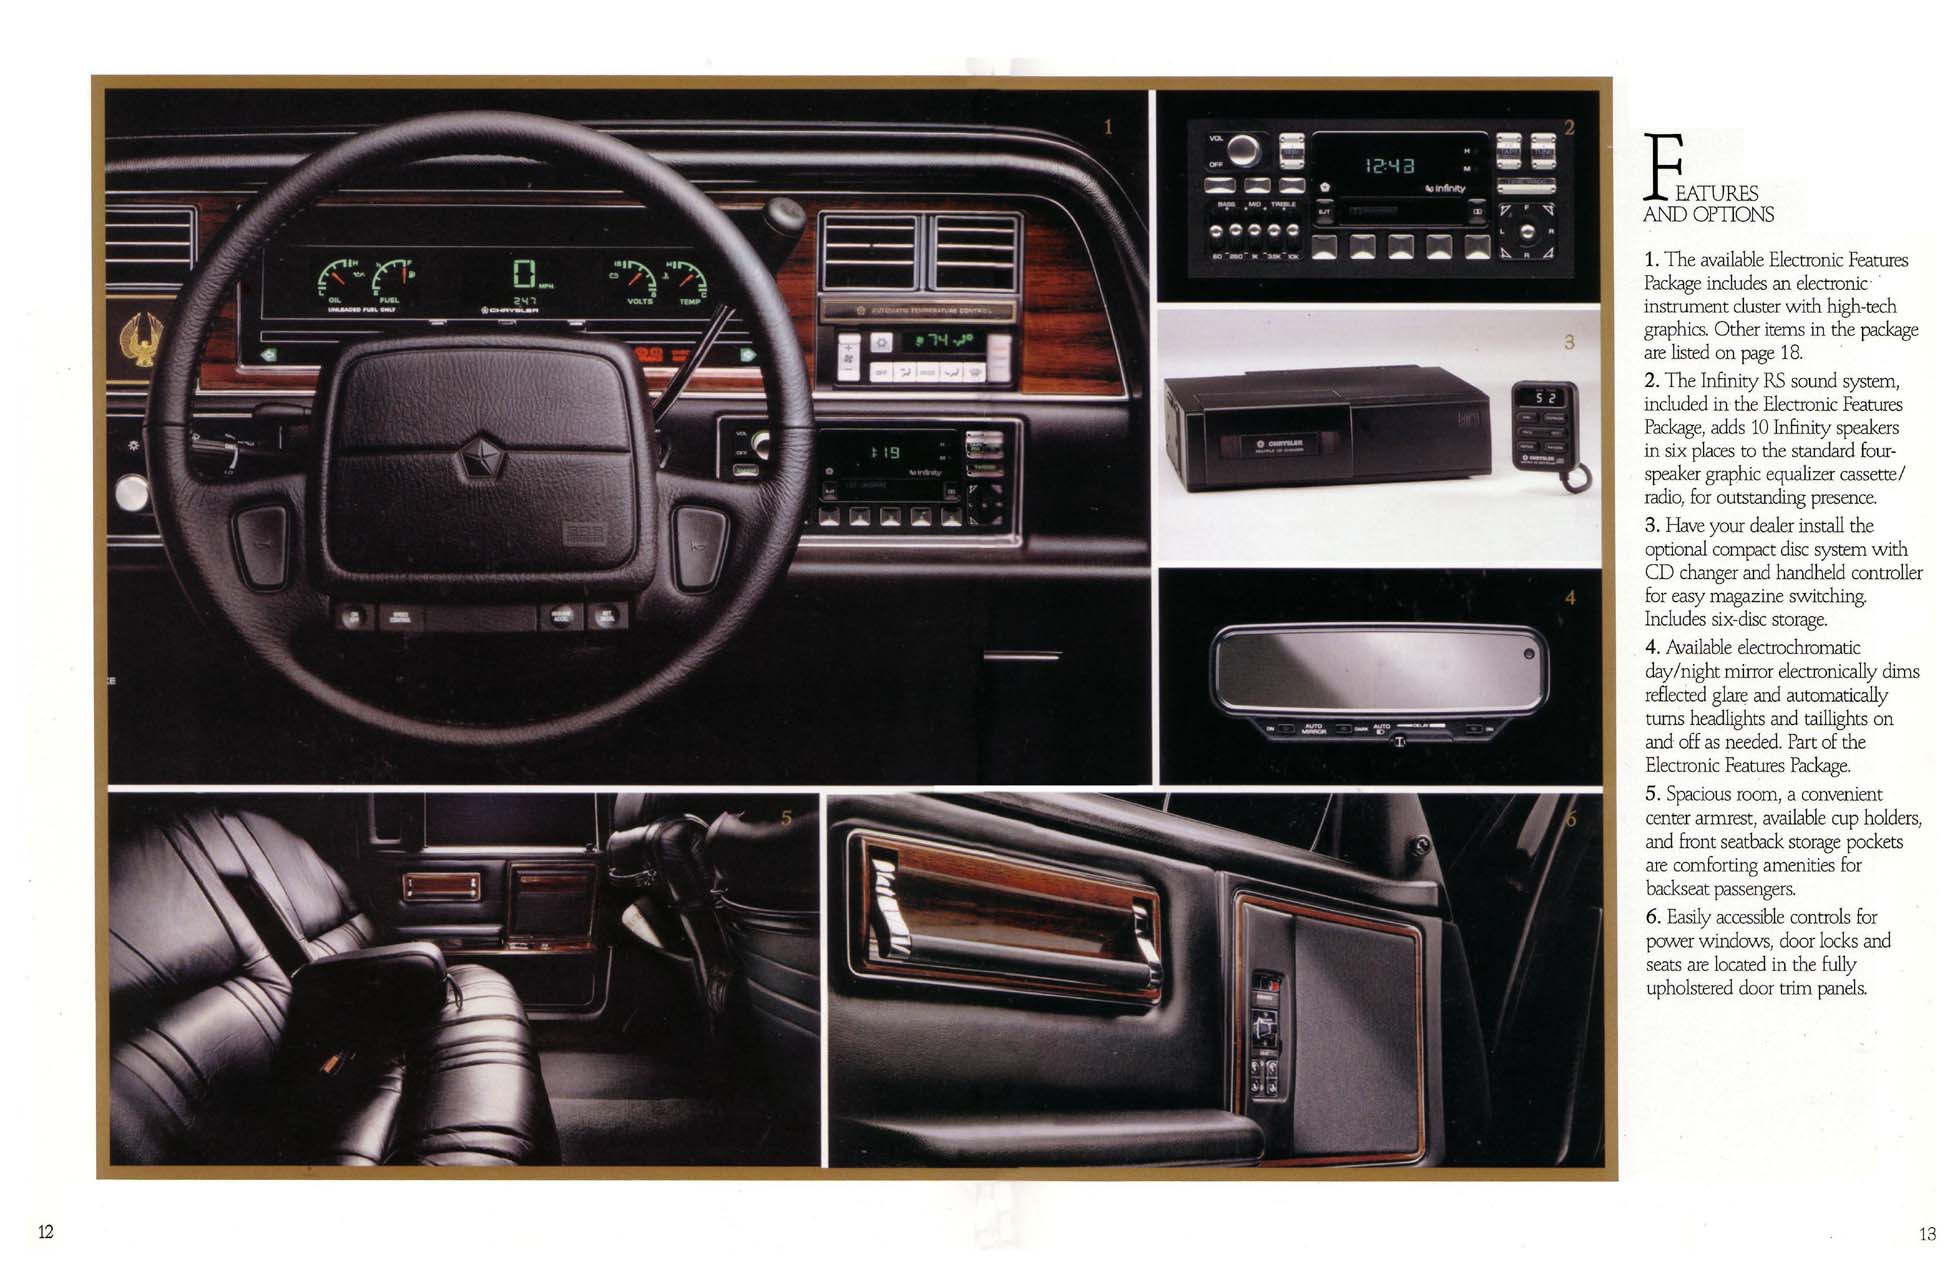 1993 Chrysler Imperial #16